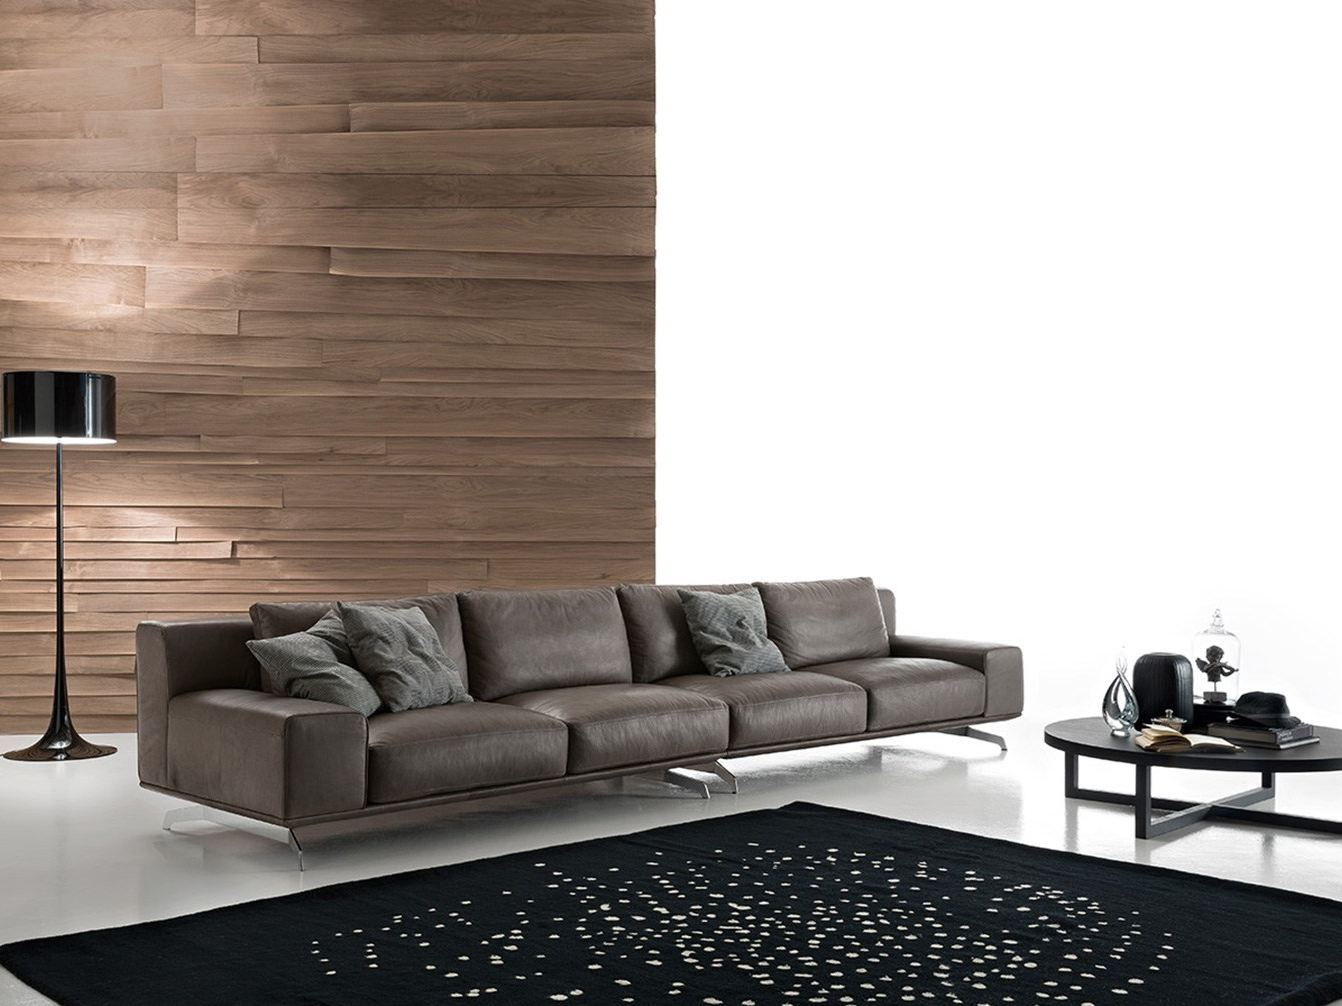 dalton leather sectional sofa by ditre italia design stefano spessotto lorella agnoletto. Black Bedroom Furniture Sets. Home Design Ideas